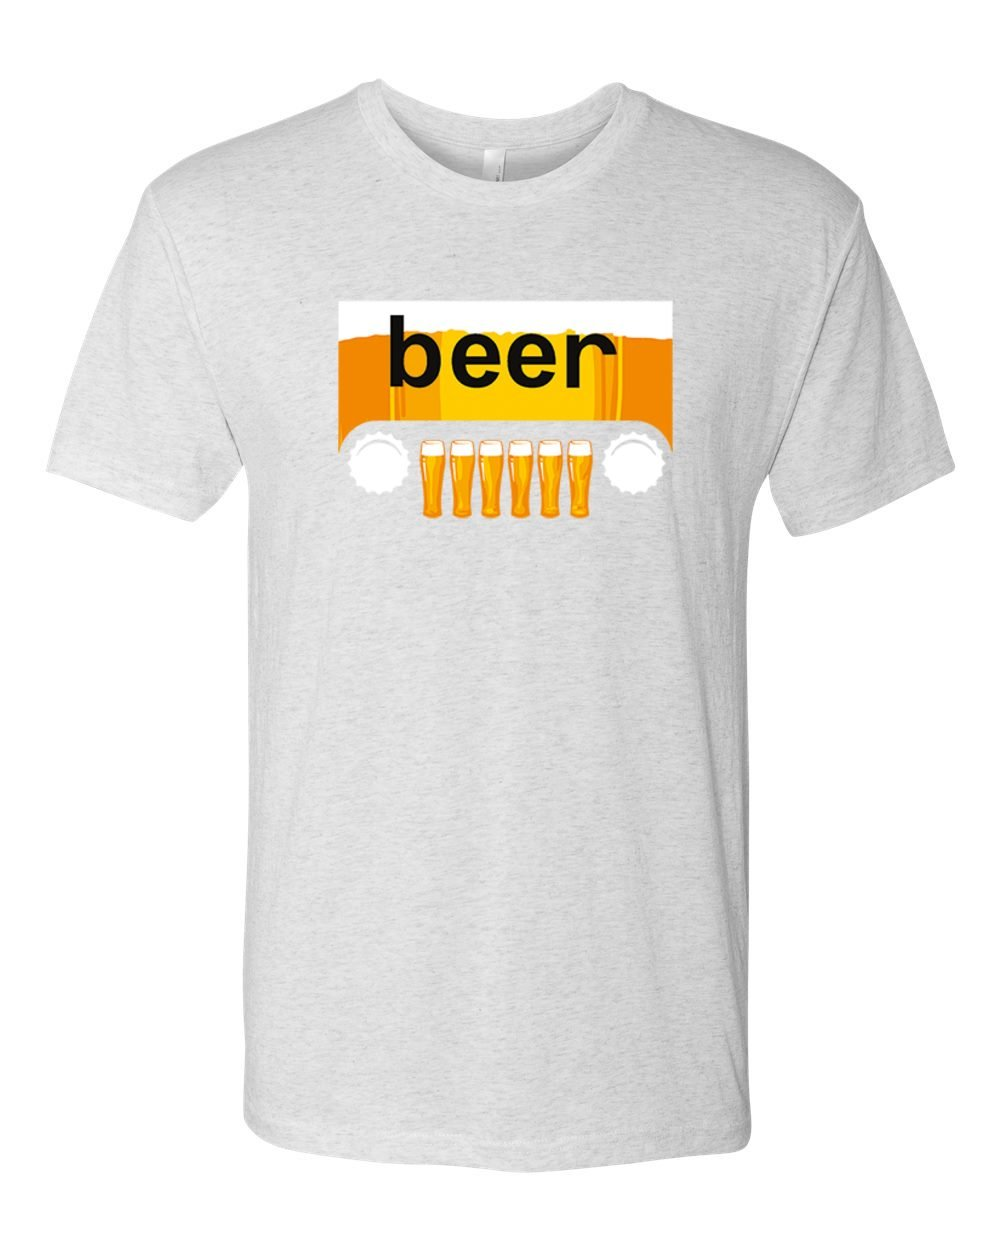 Beer Jeep Funny Parody   Pint Glasses Bottle Caps   Mens Drinking Premium Tri Blend T-Shirt, Heather White, Small